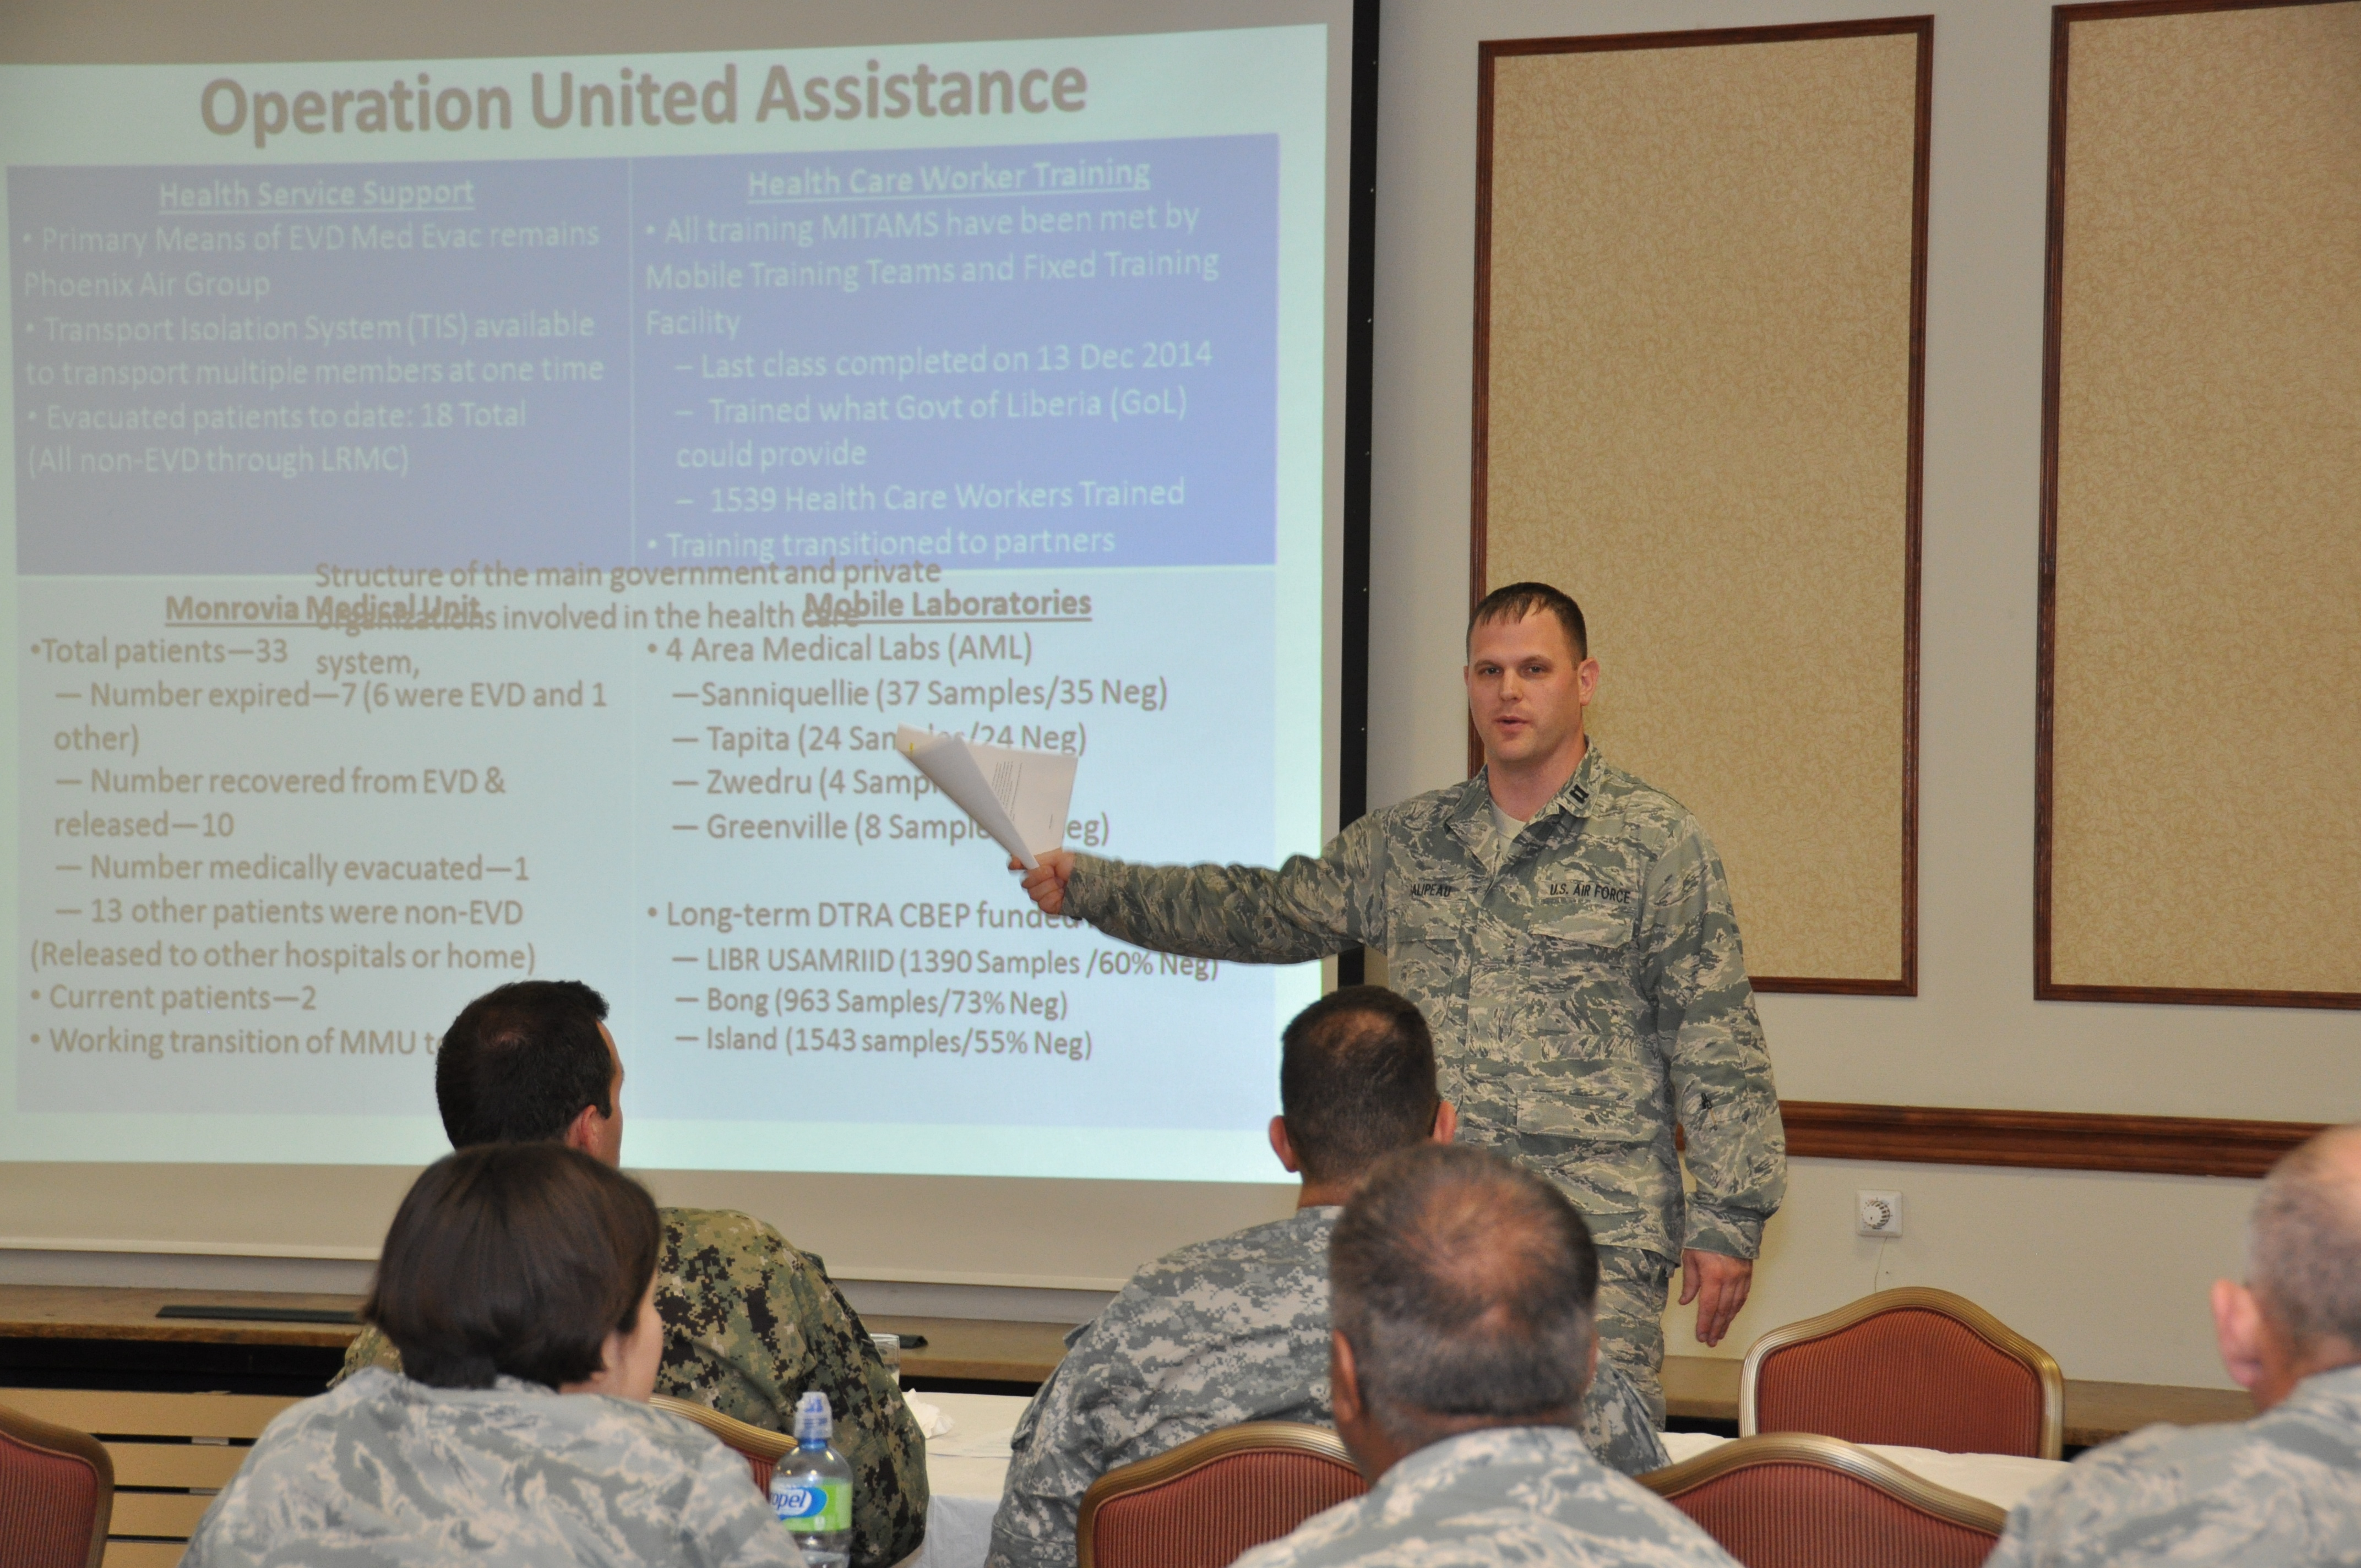 U.S. Air Force Capt. Jason T. Galipeau, medical planner at the AFRICOM Surgeon's Office, briefs about the command support to Operation United Assistance during a three-day Global Health Engagement (GHE) and Medical Stability Operations (MSO) course held in Stuttgart, Germany. April 27-29, 2015.  More than 40 medical experts from U.S. Africa Command, its subordinate commands and the United States attended the course held in Stuttgart, Germany, to build an awareness of the complex set of variables that shape the development of Department of Defense Global Health Engagement (GHE) and Medical Stability Operations (MSO).  and to also help medical practitioners here gain an understanding of the key principles to plan and conduct a GHE/MSO activity. The course was hosted by the AFRICOM command surgeon's office.  (AFRICOM photo by Tech. Sgt. Olufemi A. Owolabi)